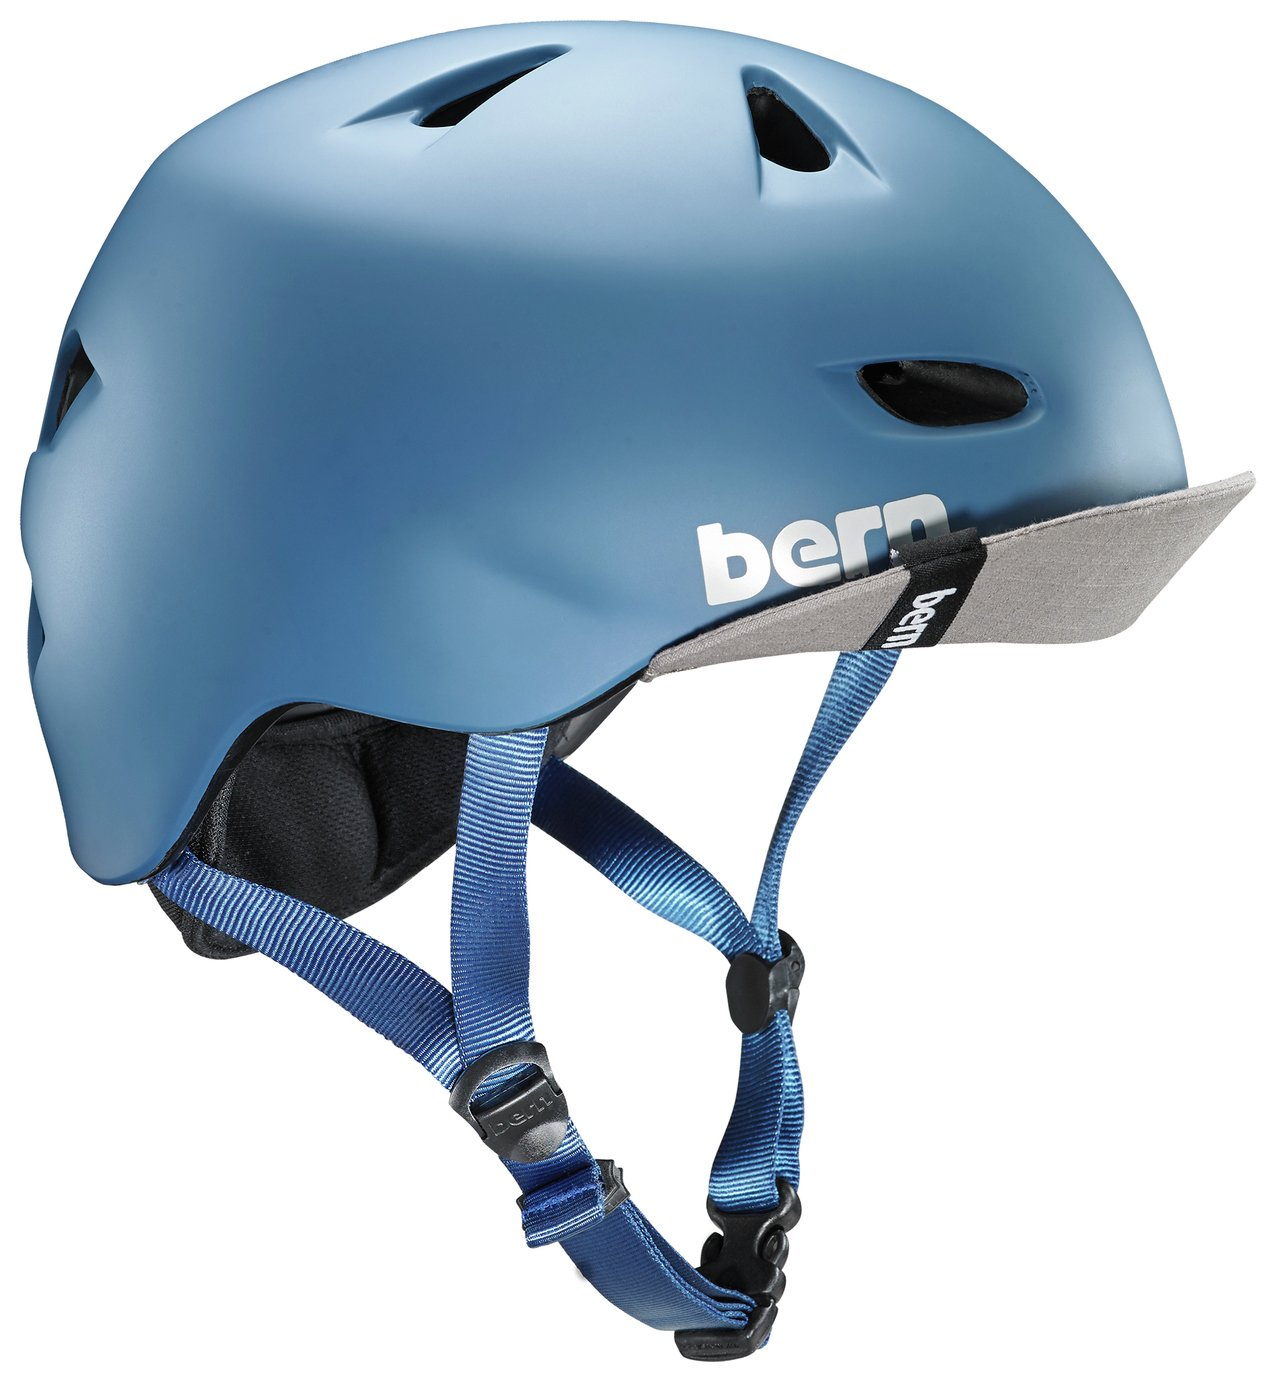 Image of Bern Brentwood Steel Helmet with Visor - Blue